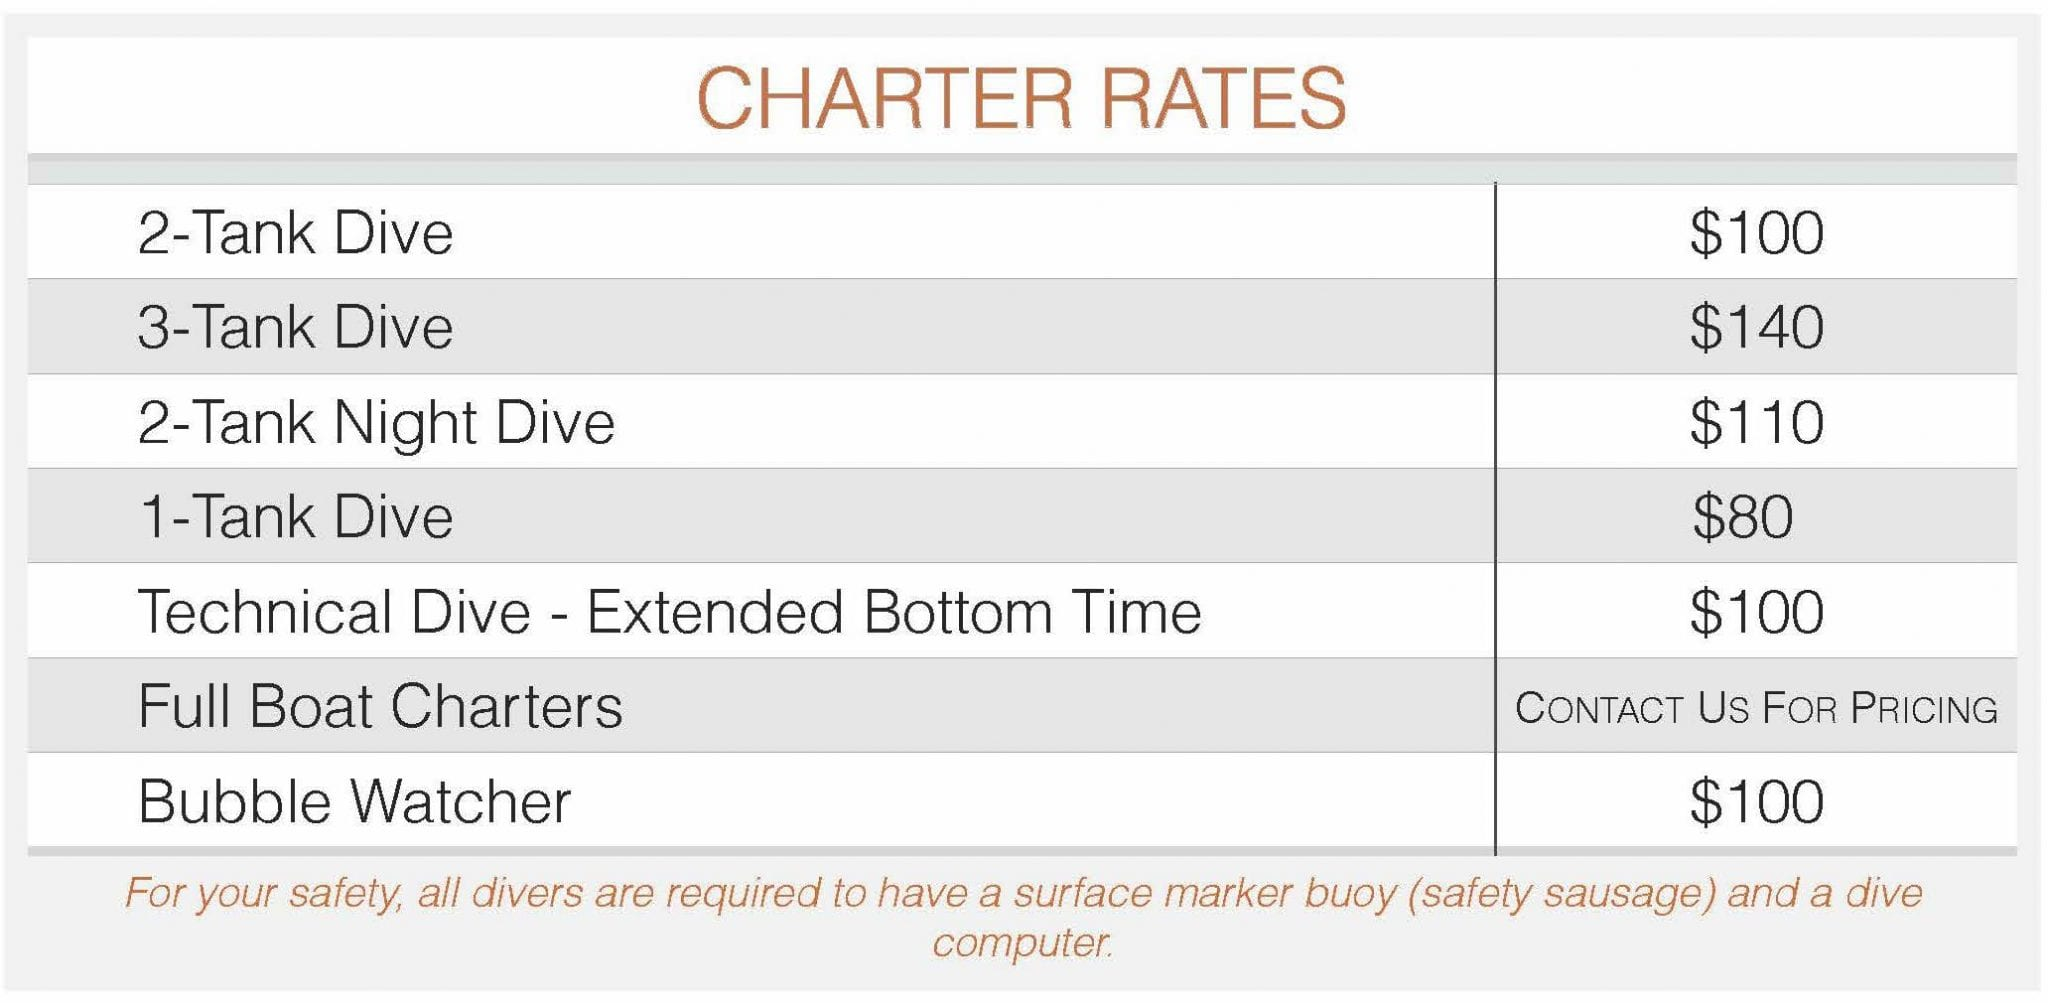 JDC Charter Rates Pricing Table